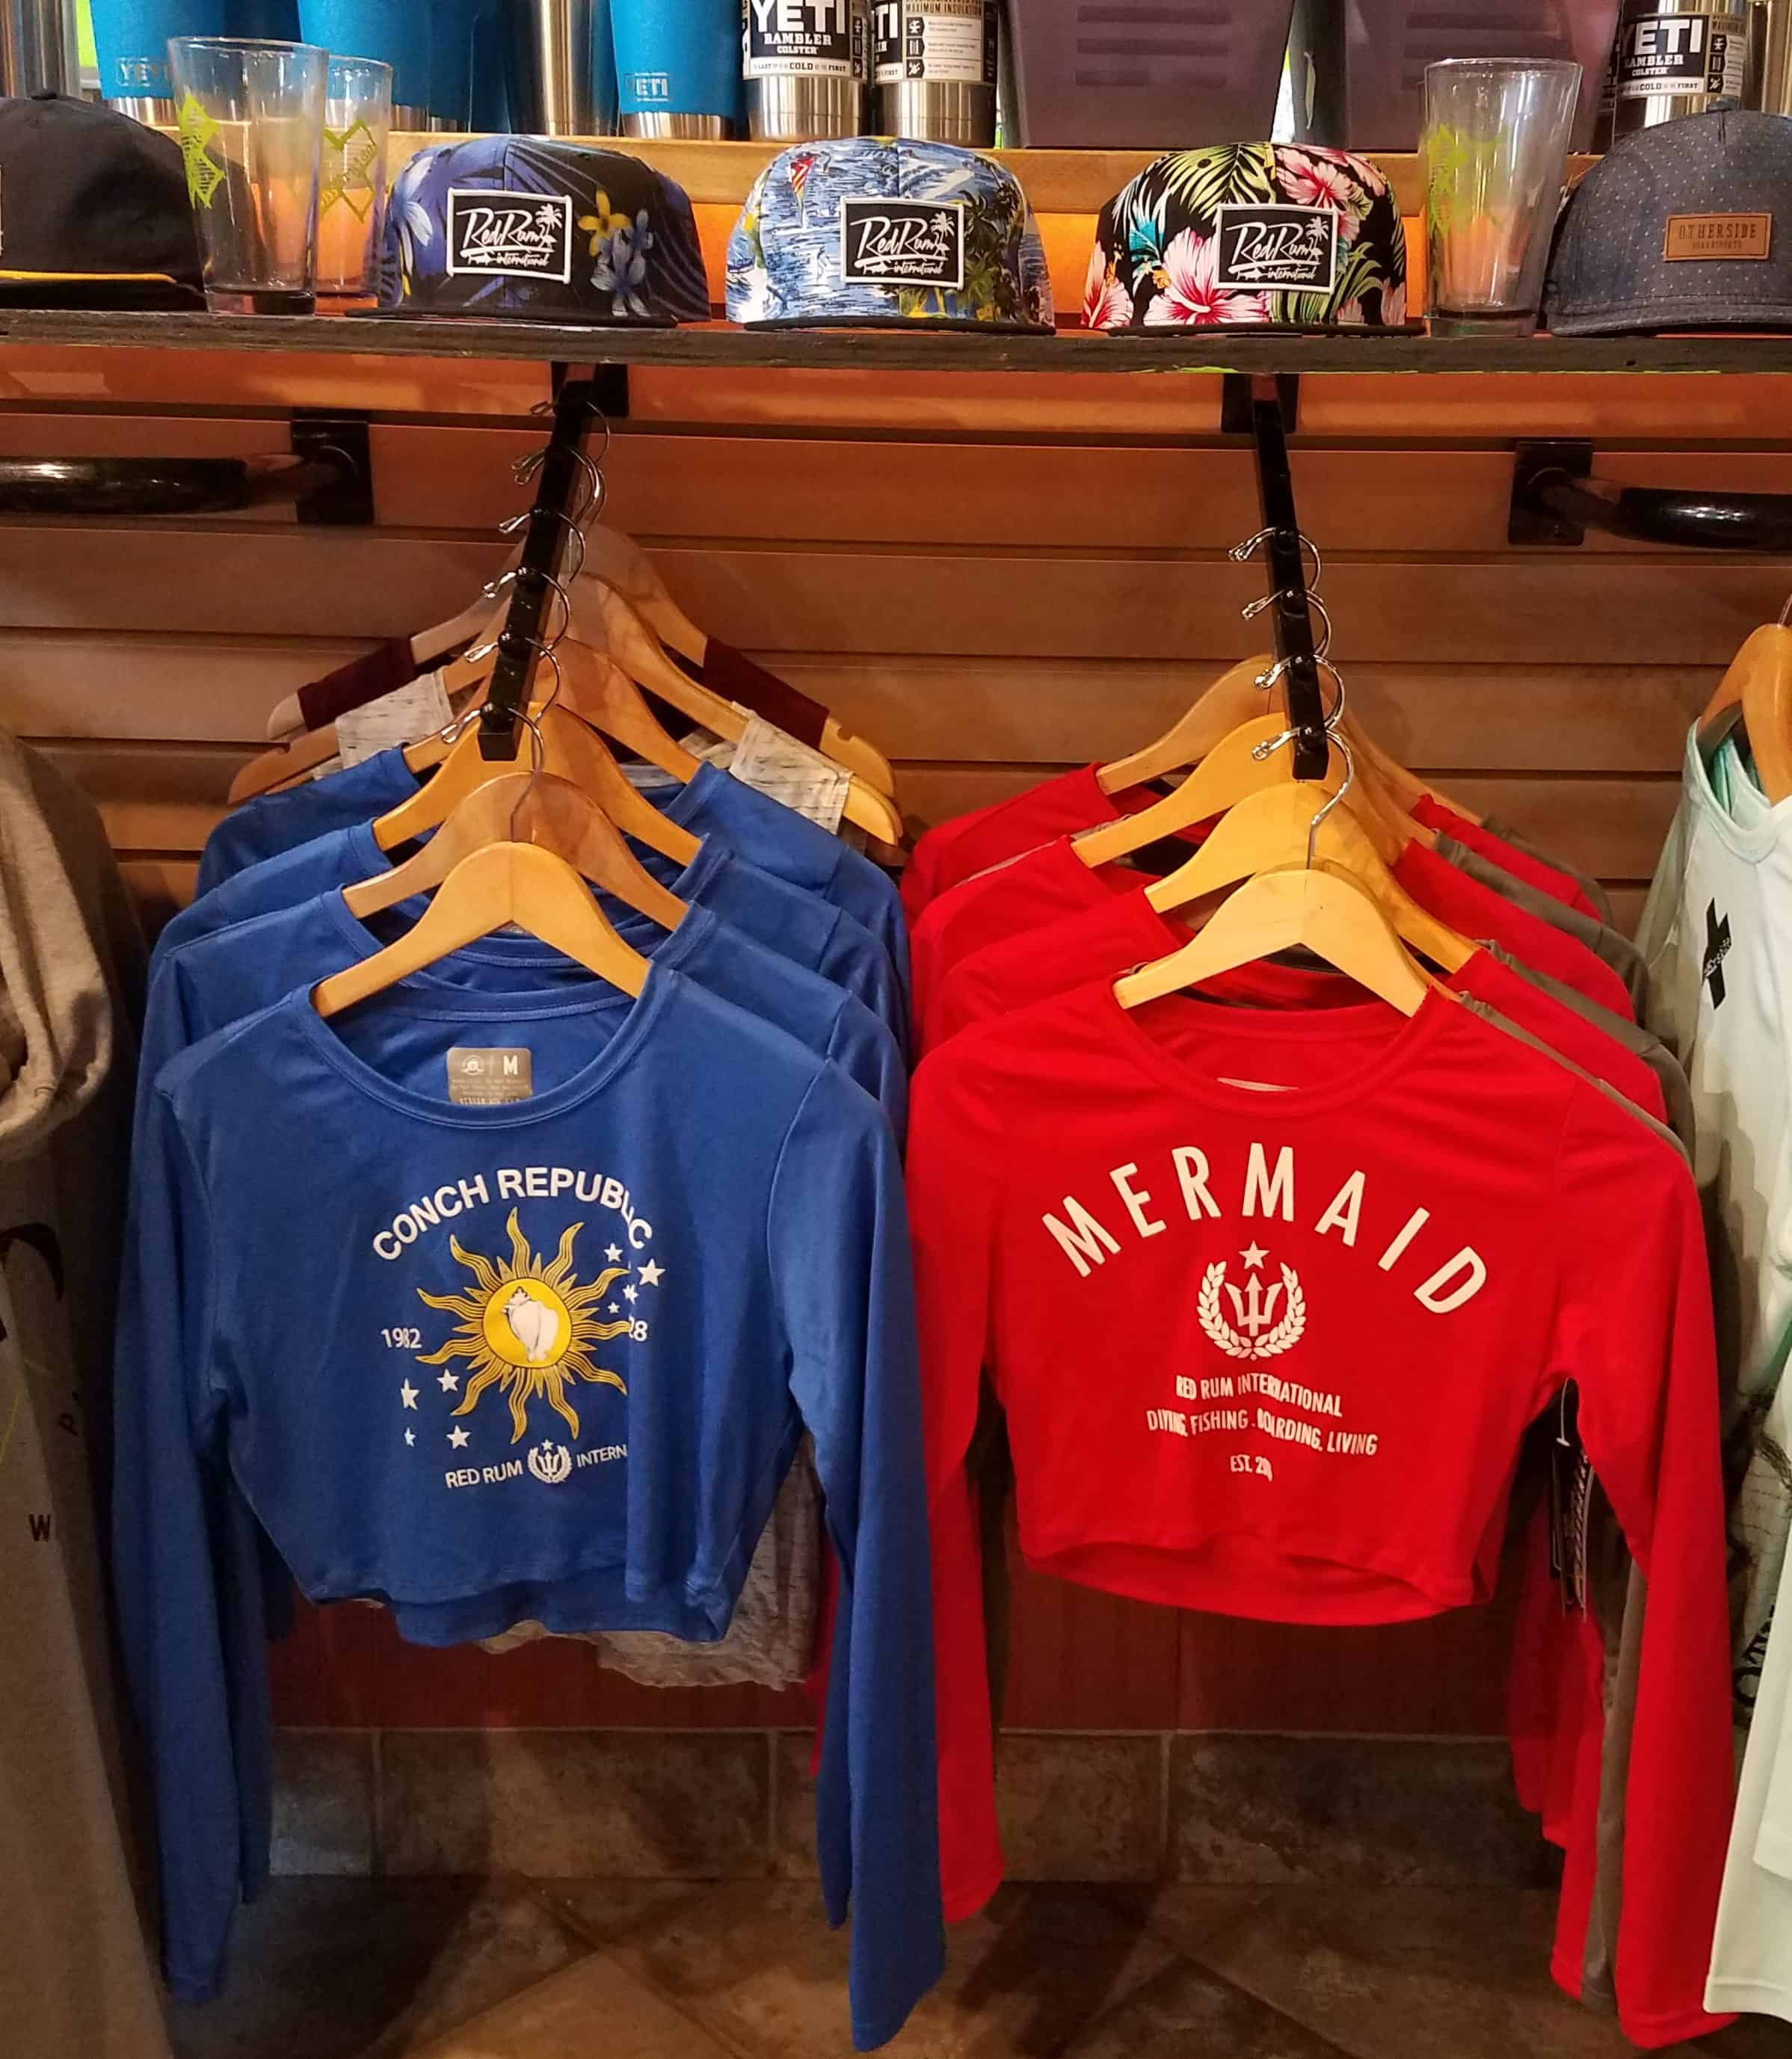 Red Rum Shirts at Otherside Boardsports